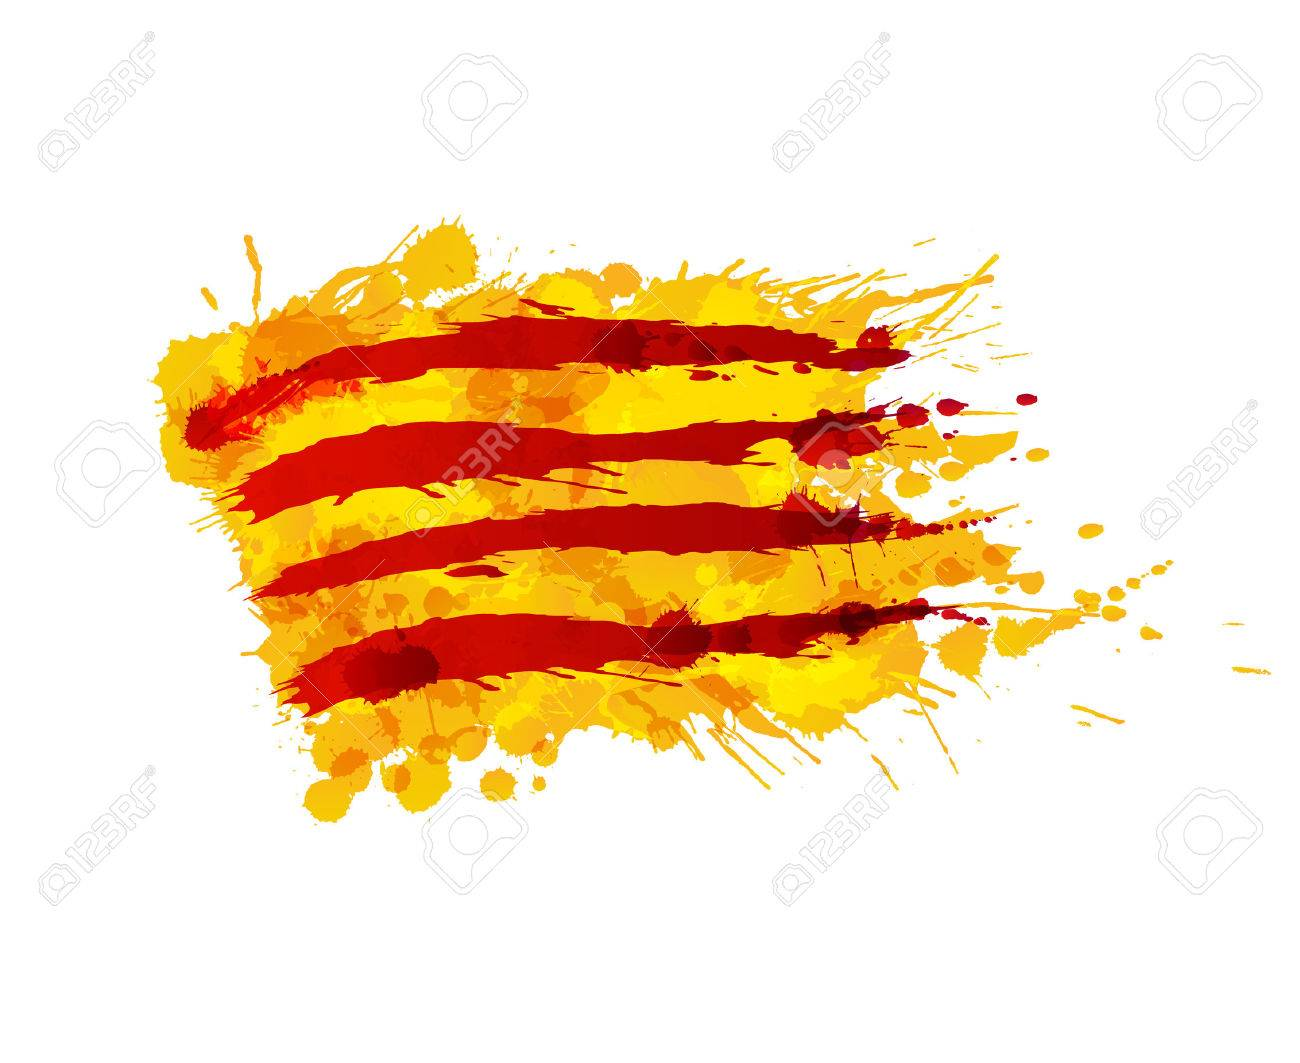 Flag of Catalonia made of colorful splashes - 48213701